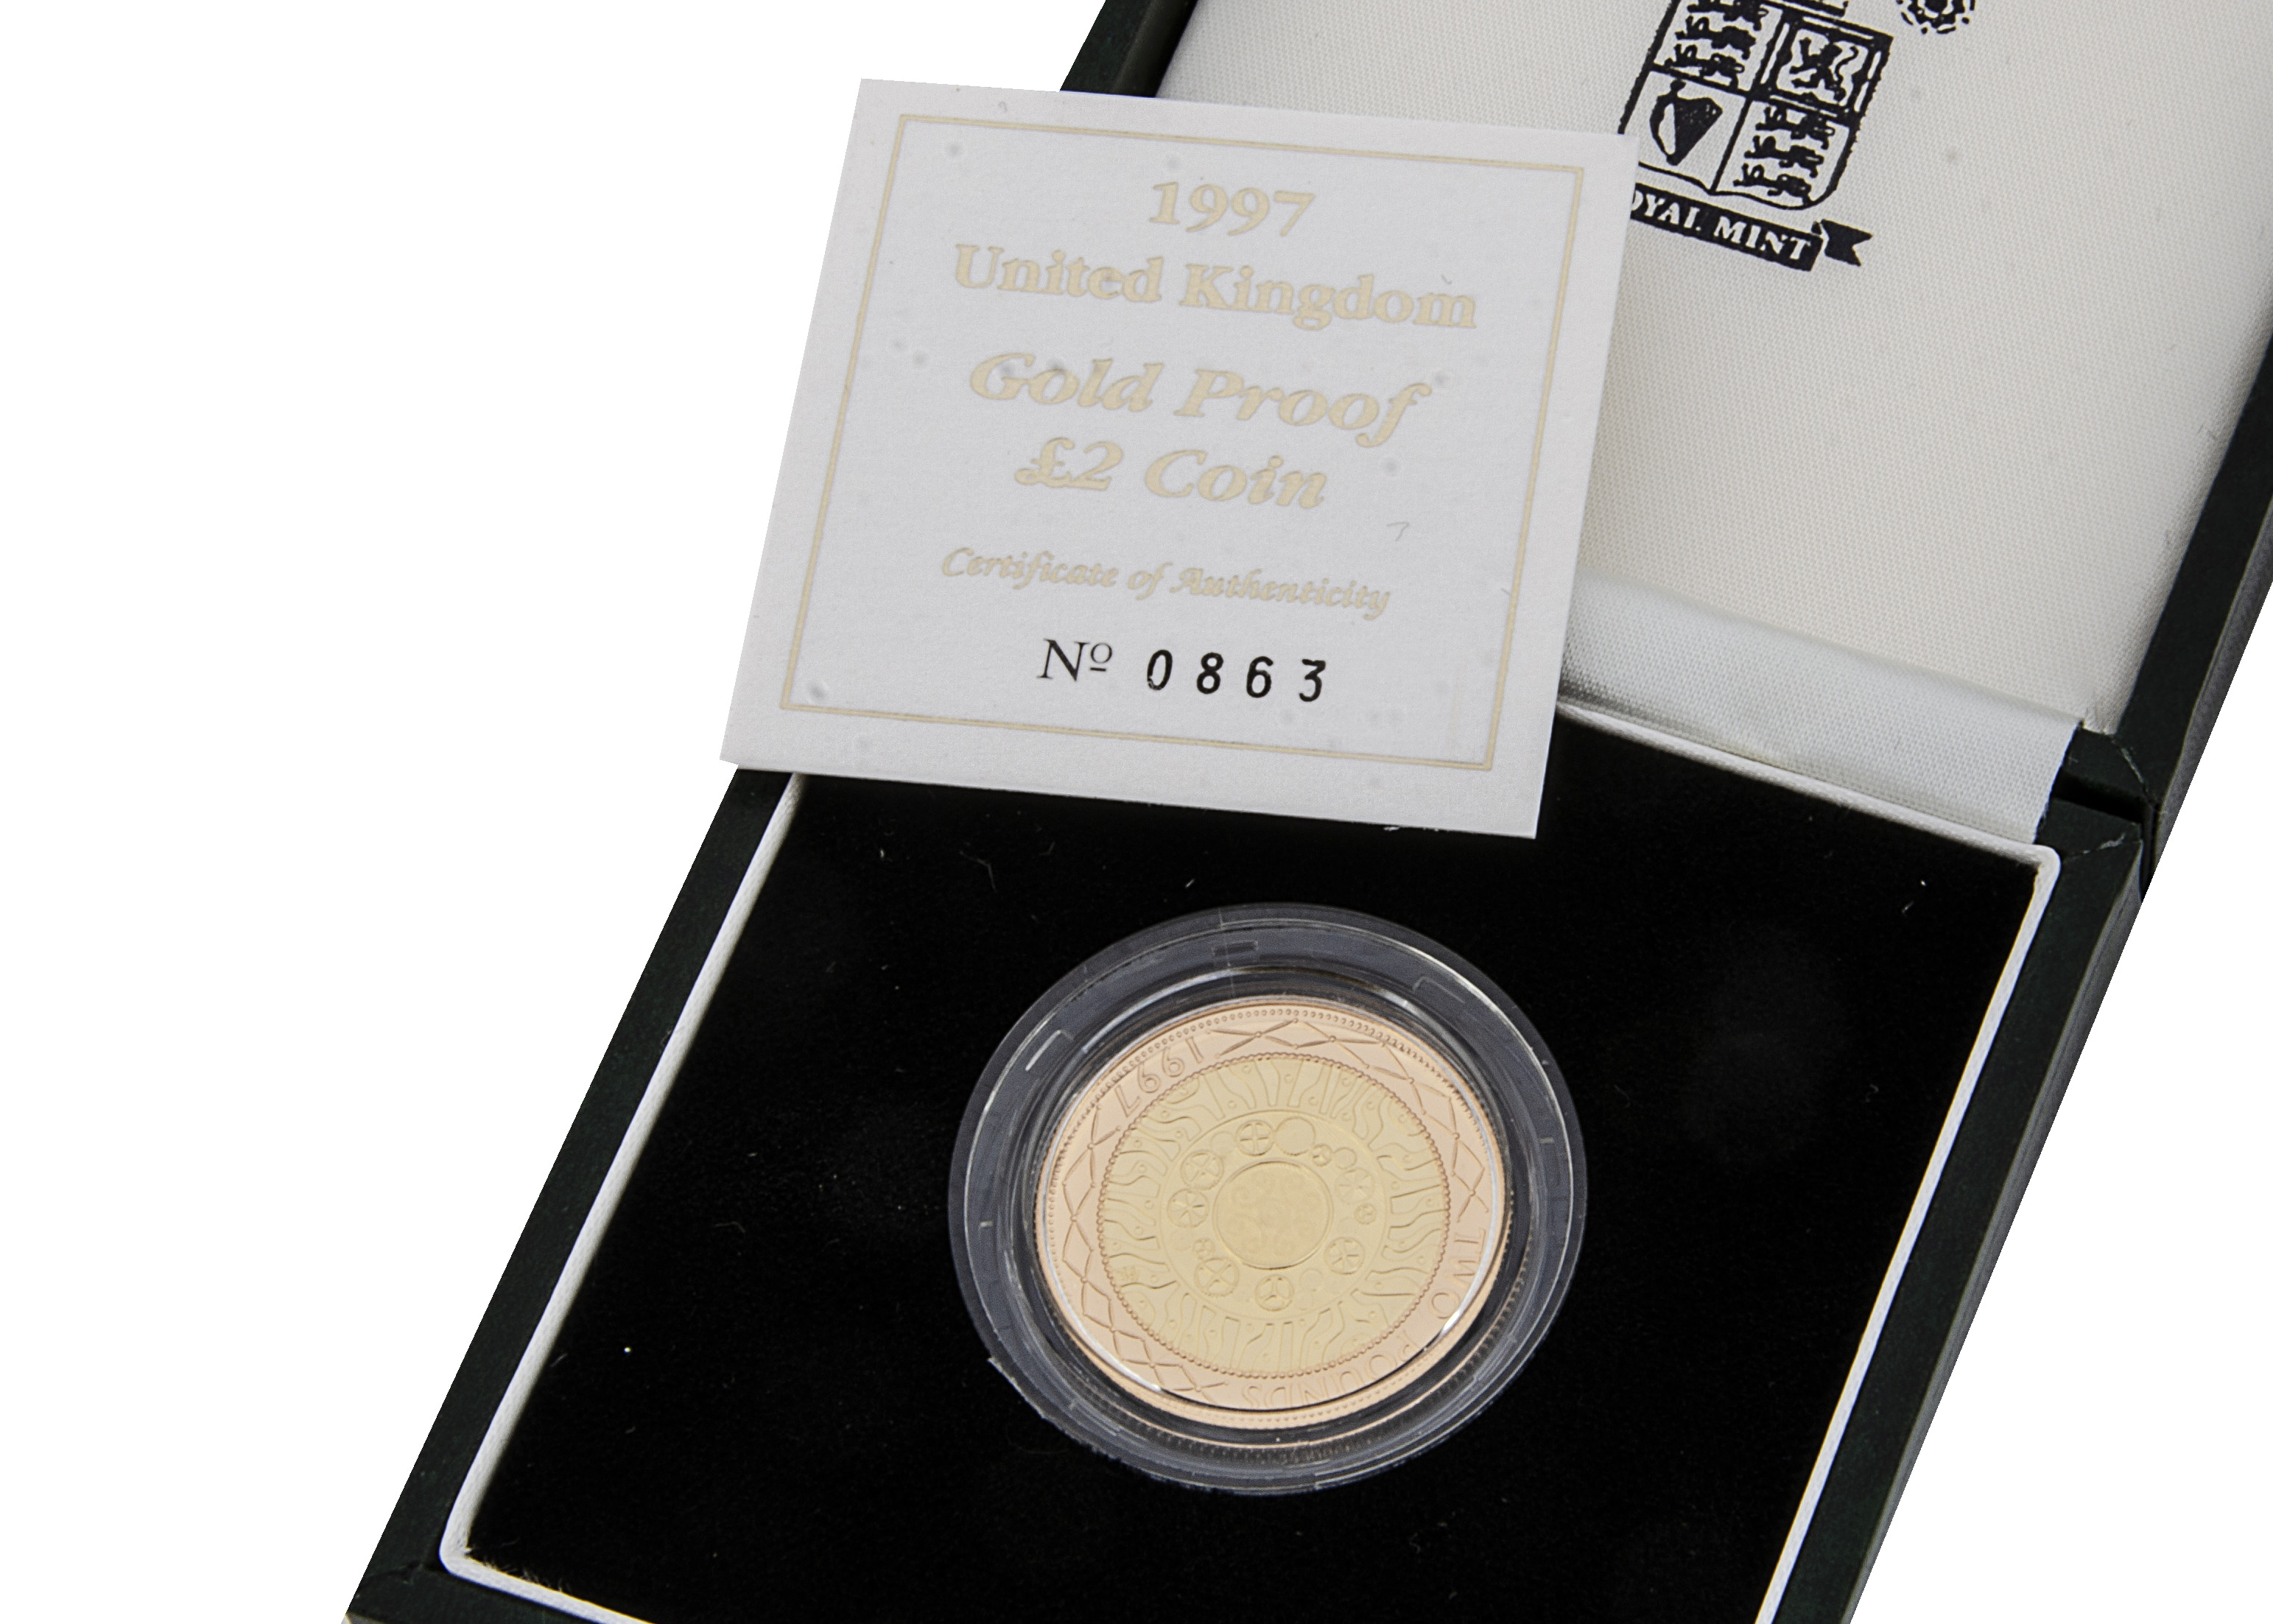 A modern Royal Mint UK Gold Proof Two Pound Coin, 1997, in box with certificate, 15.98g